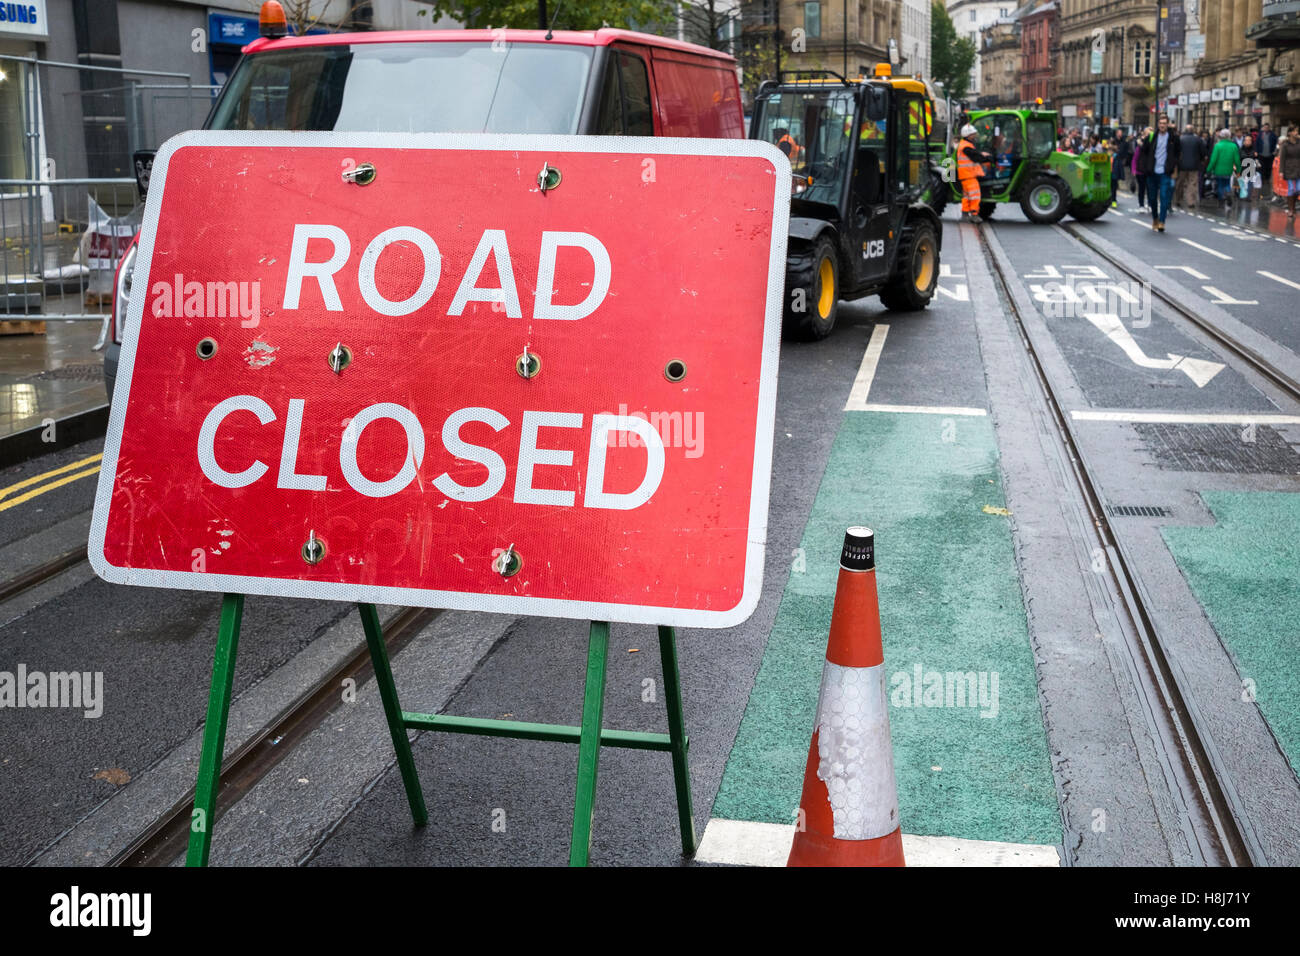 Roadworks signs in Manchester city centre, UK Stock Photo